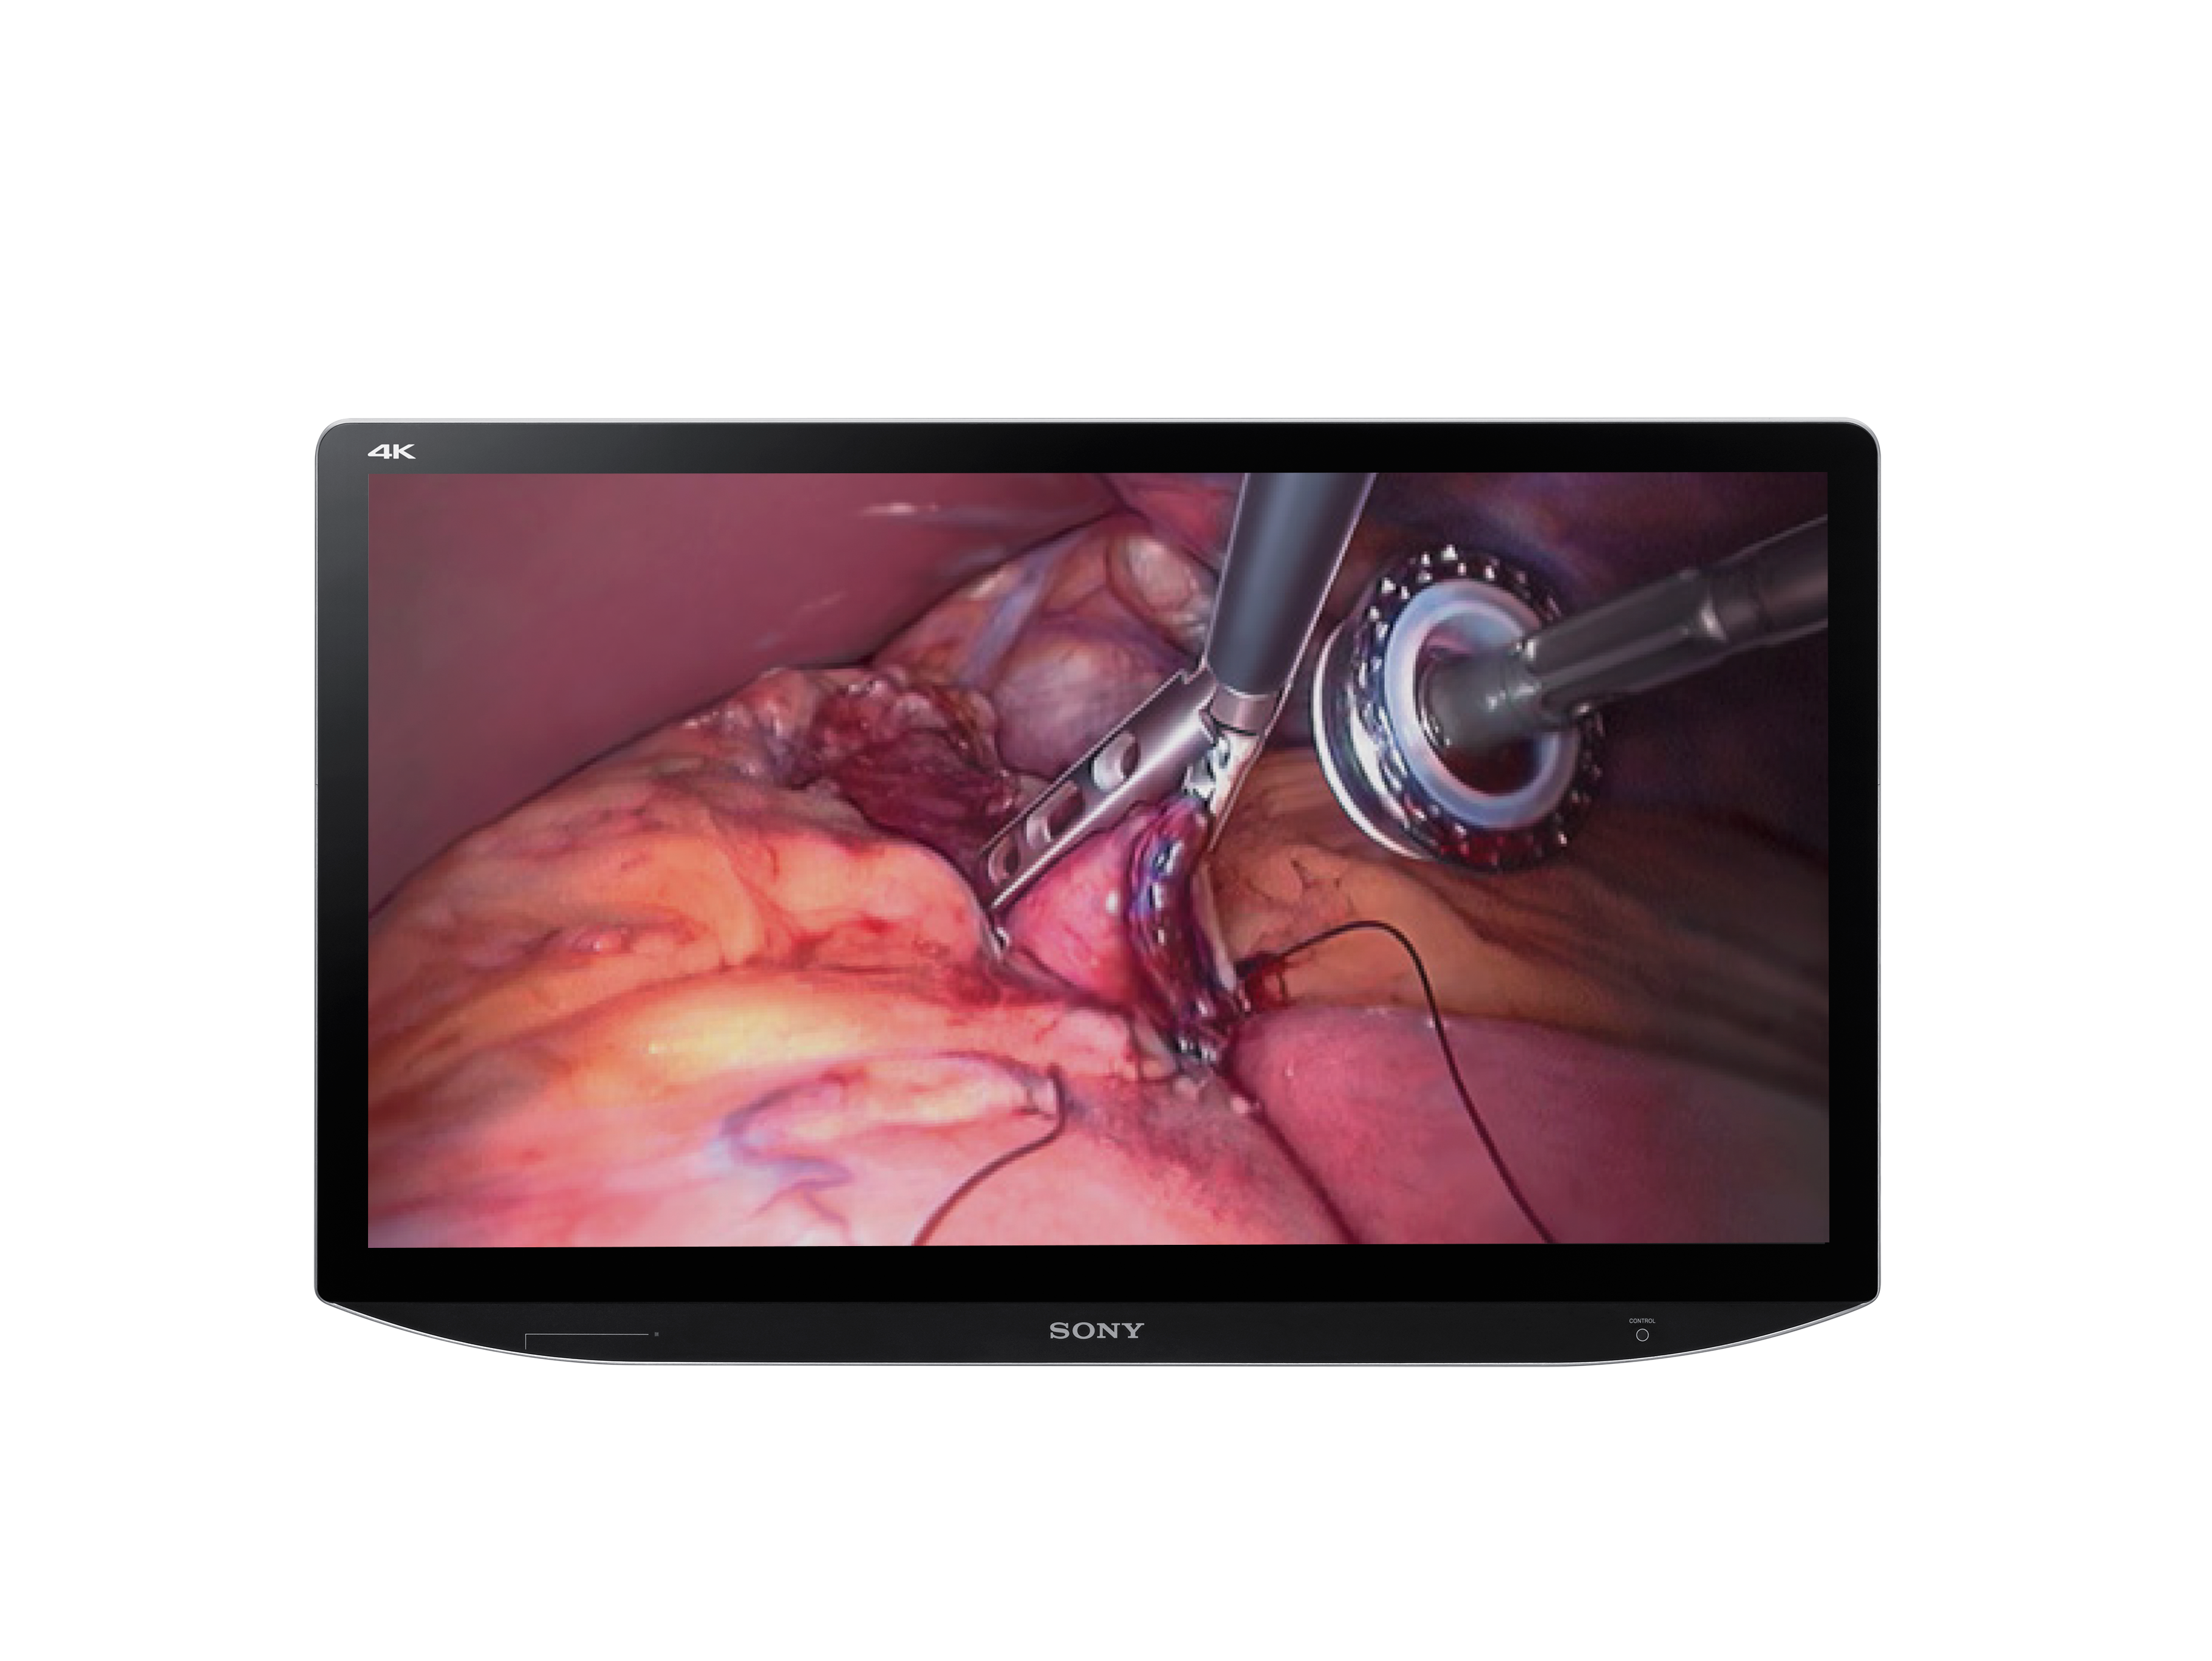 Sony Transforms Robotic Surgery with 4K 3D Technology at AUA